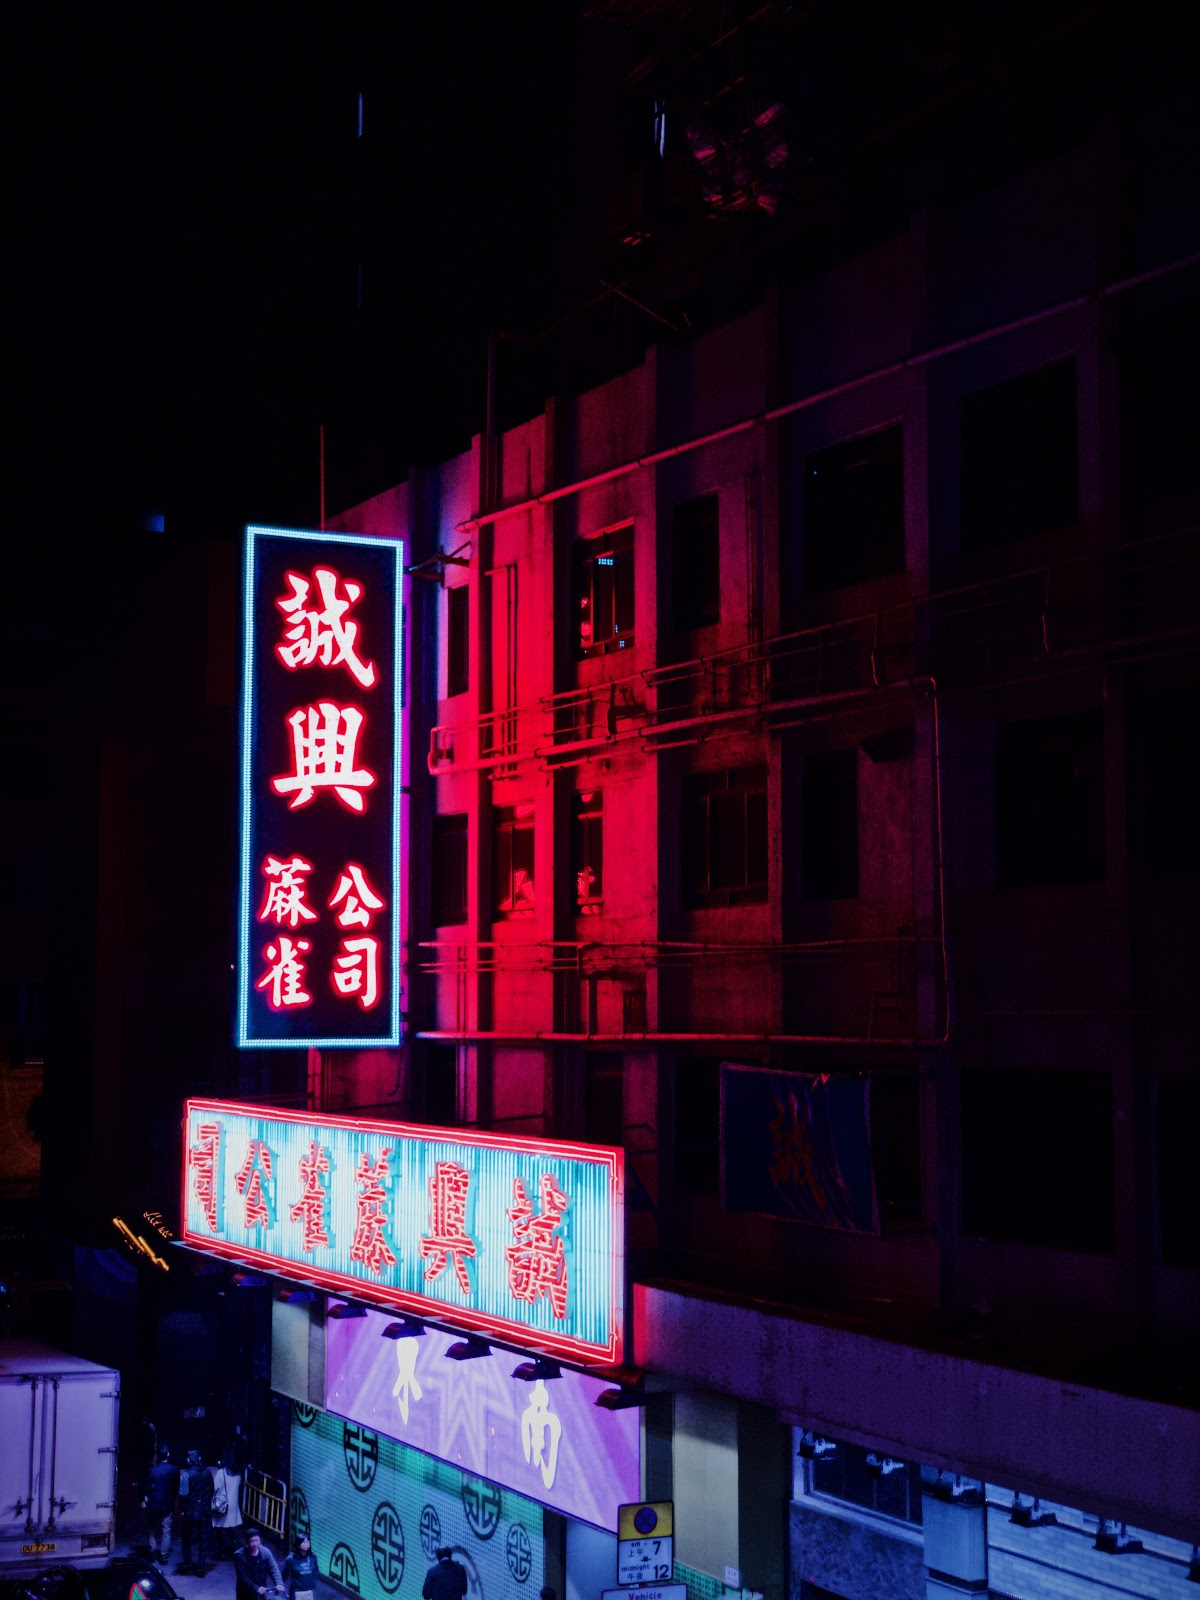 Make your photos pop with these 8 colorful ways to shoot neon signs ...